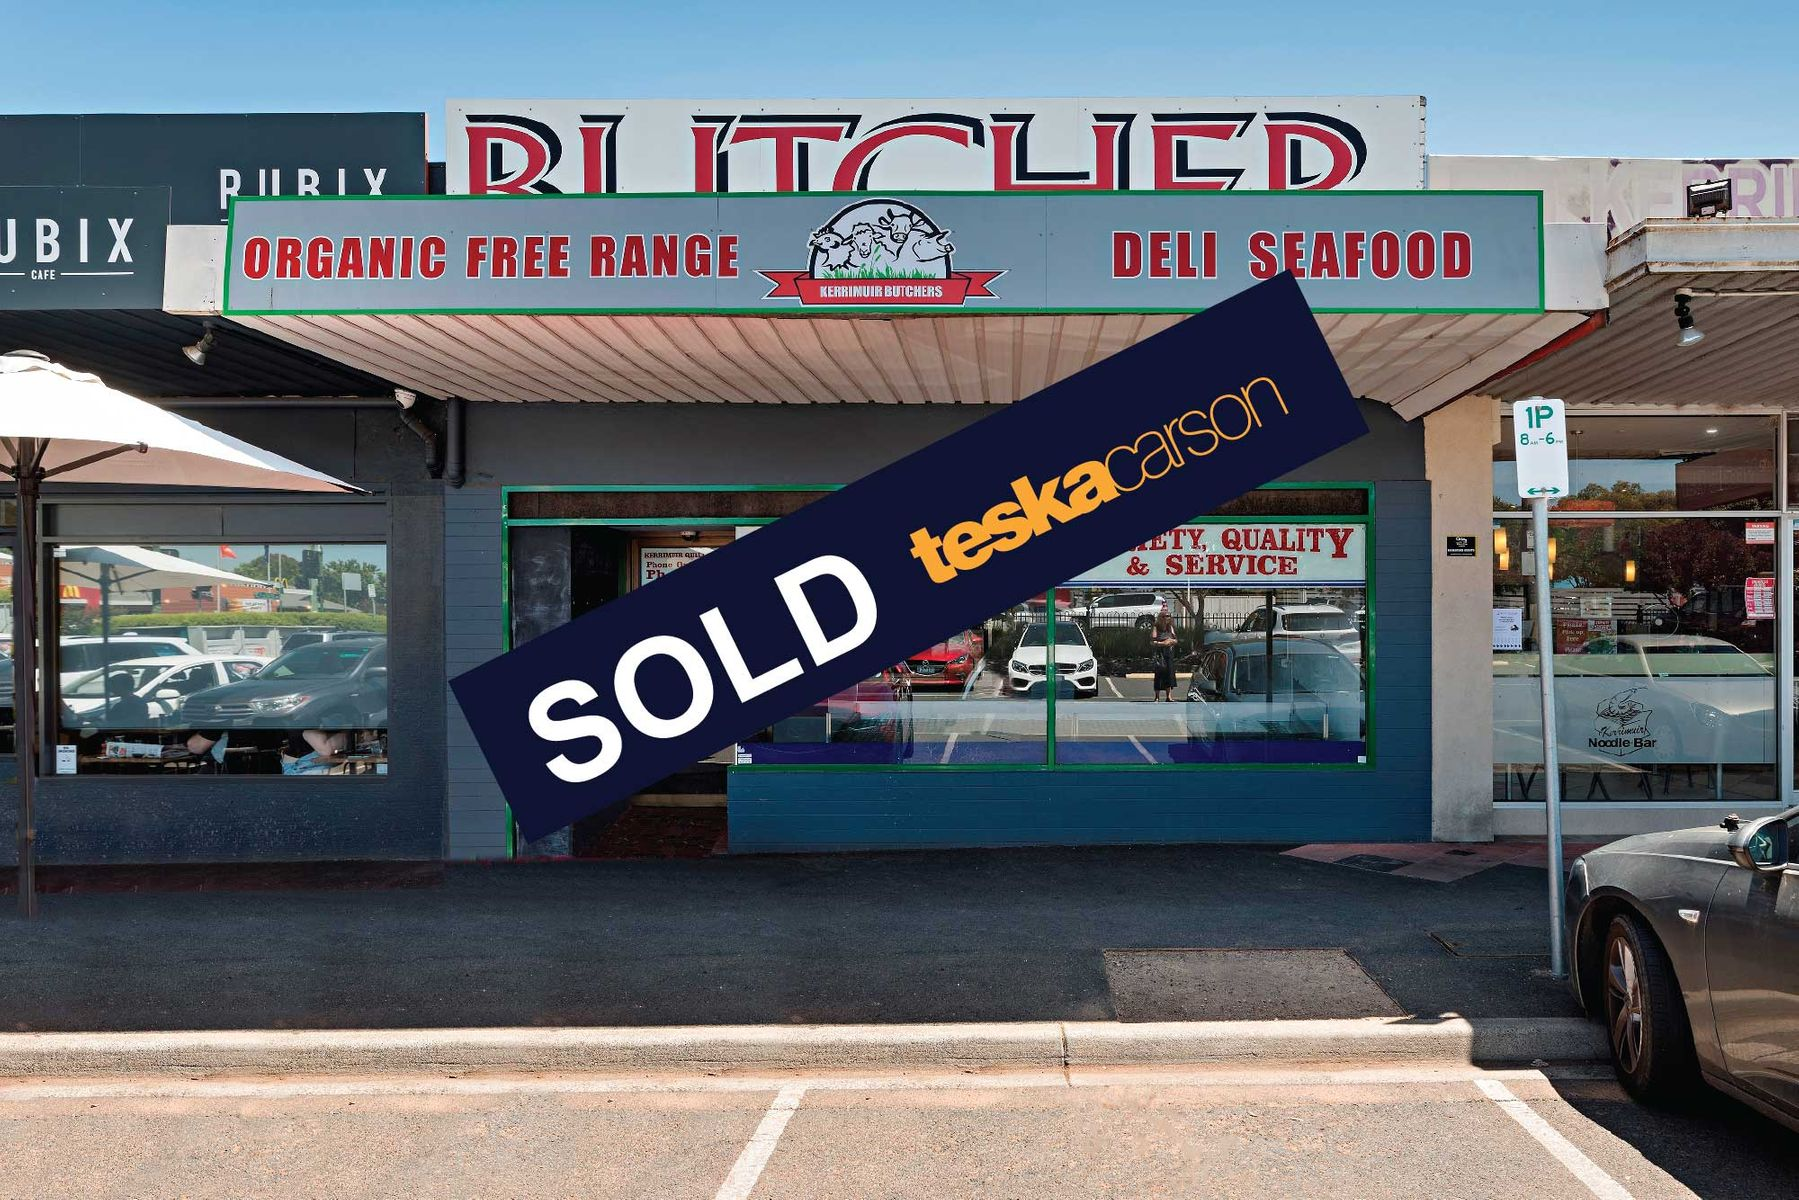 SOLD OVERLAY BANNER AI 2000 X 1334px   Copy